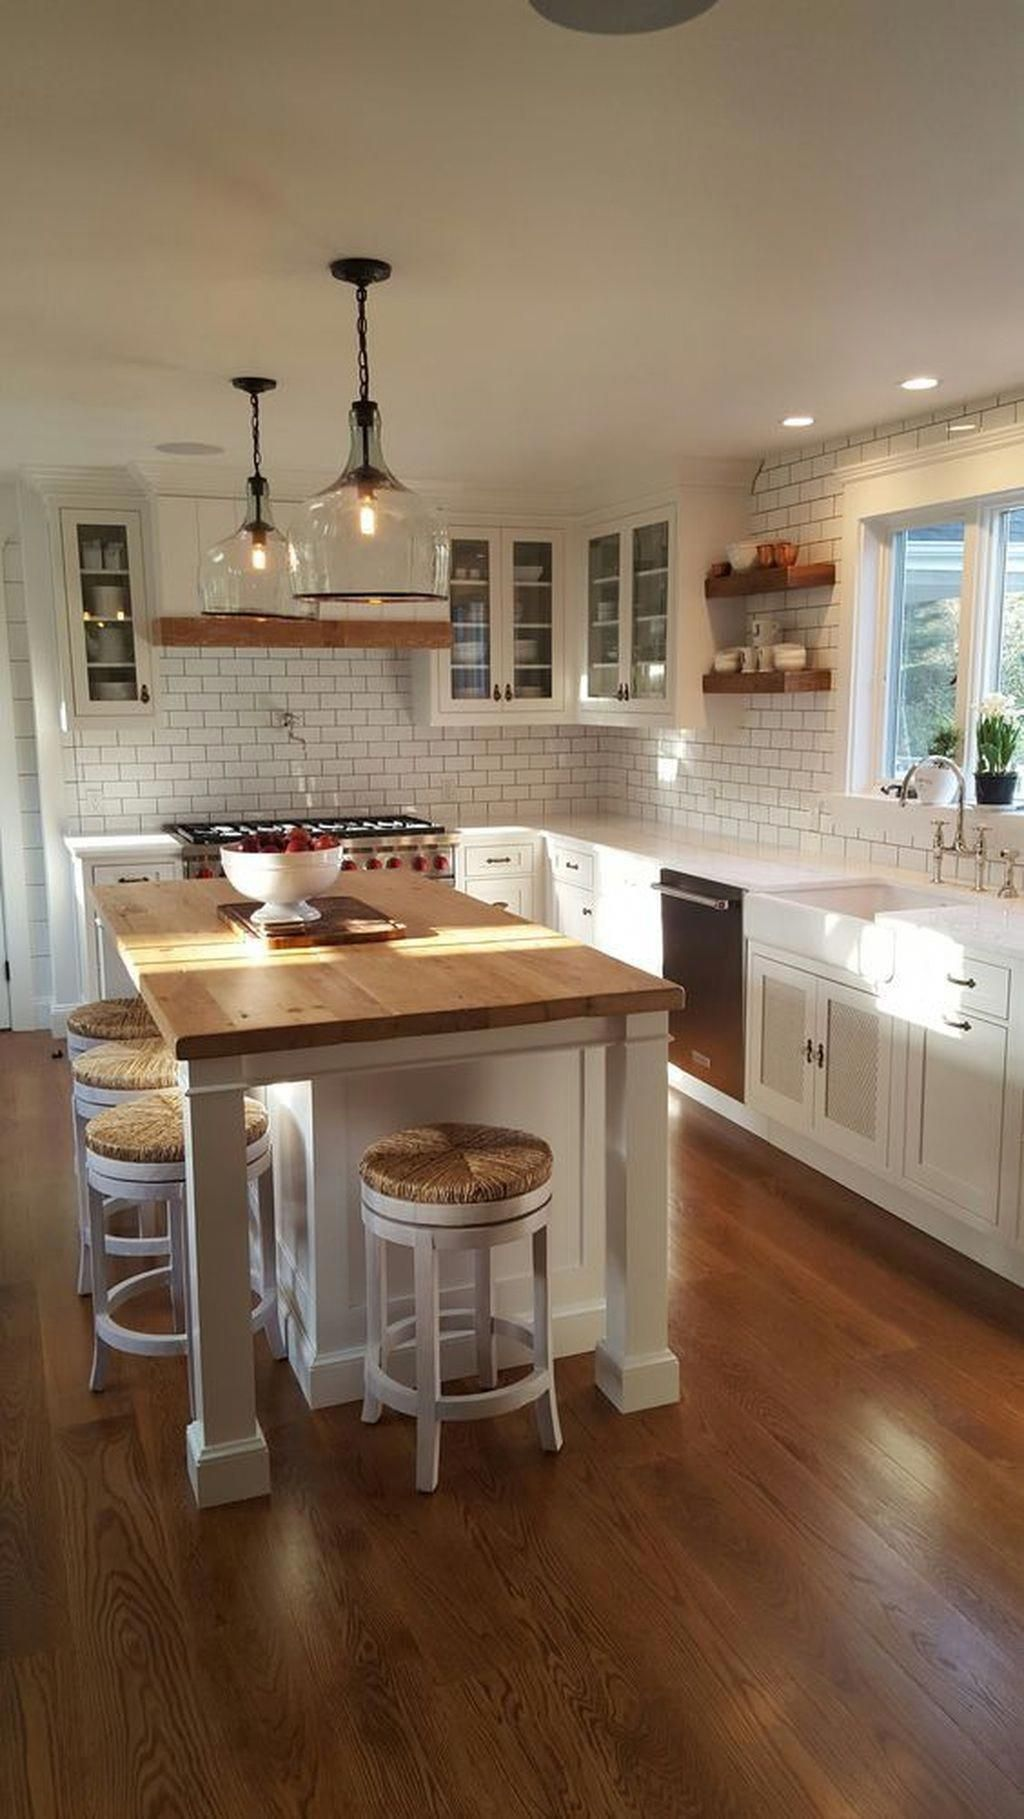 How to adopt rattan at home? Kitchen remodel small